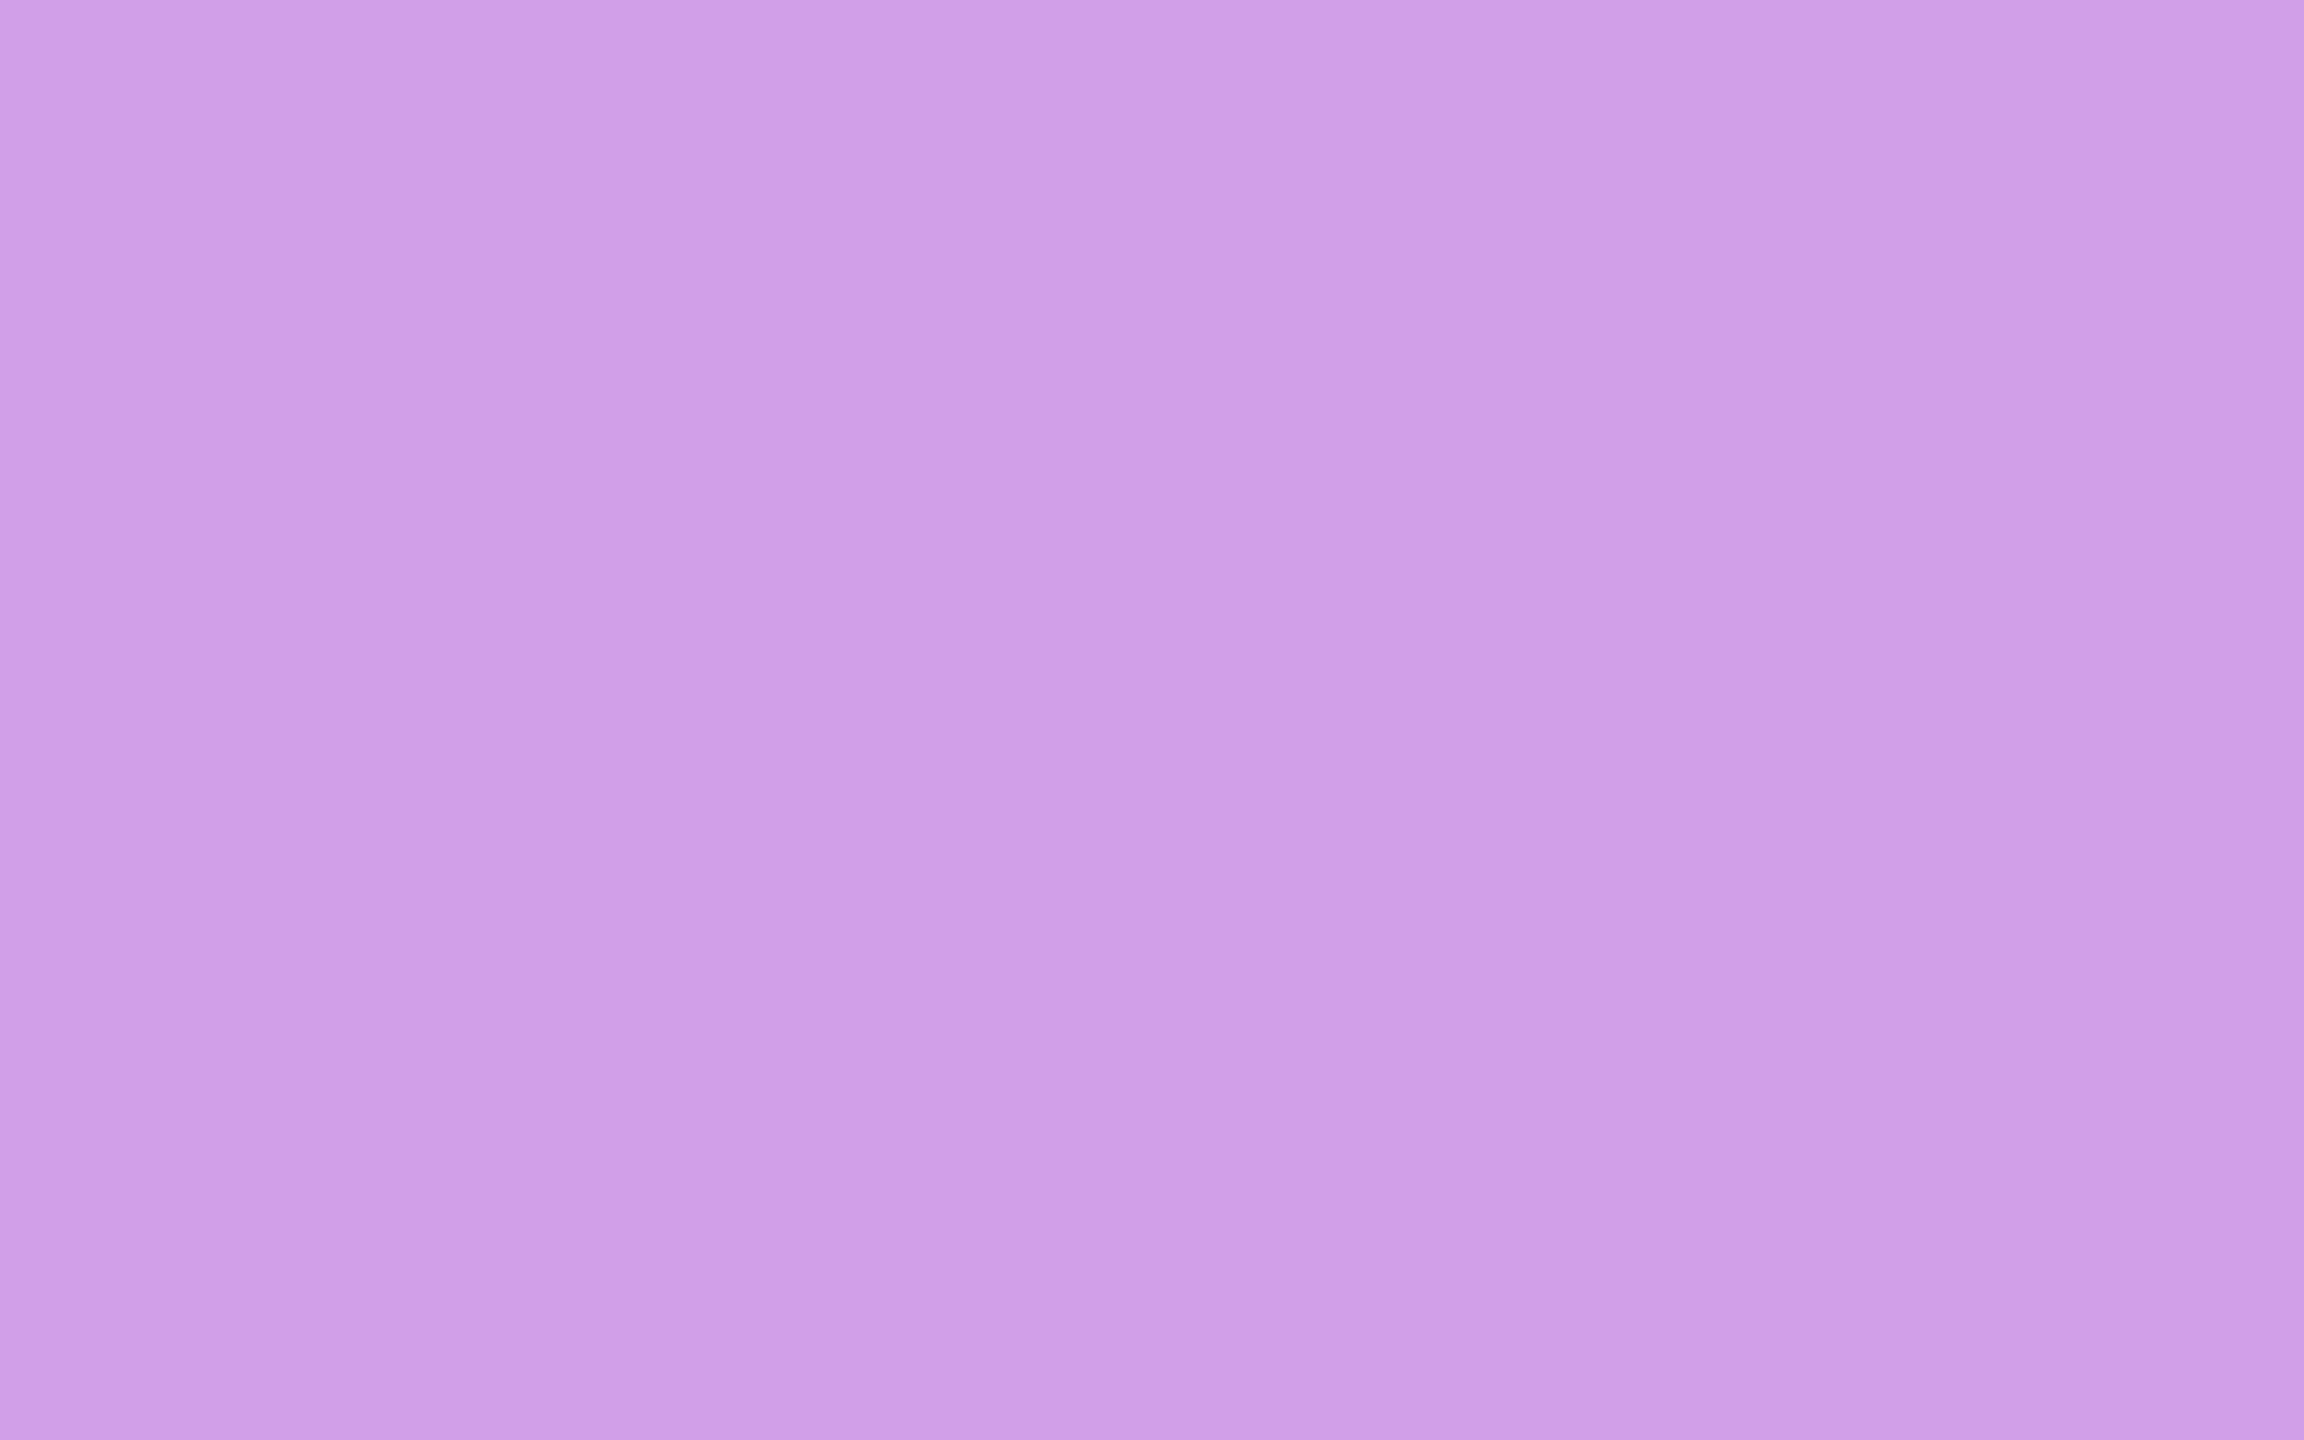 2304x1440 Bright Ube Solid Color Background